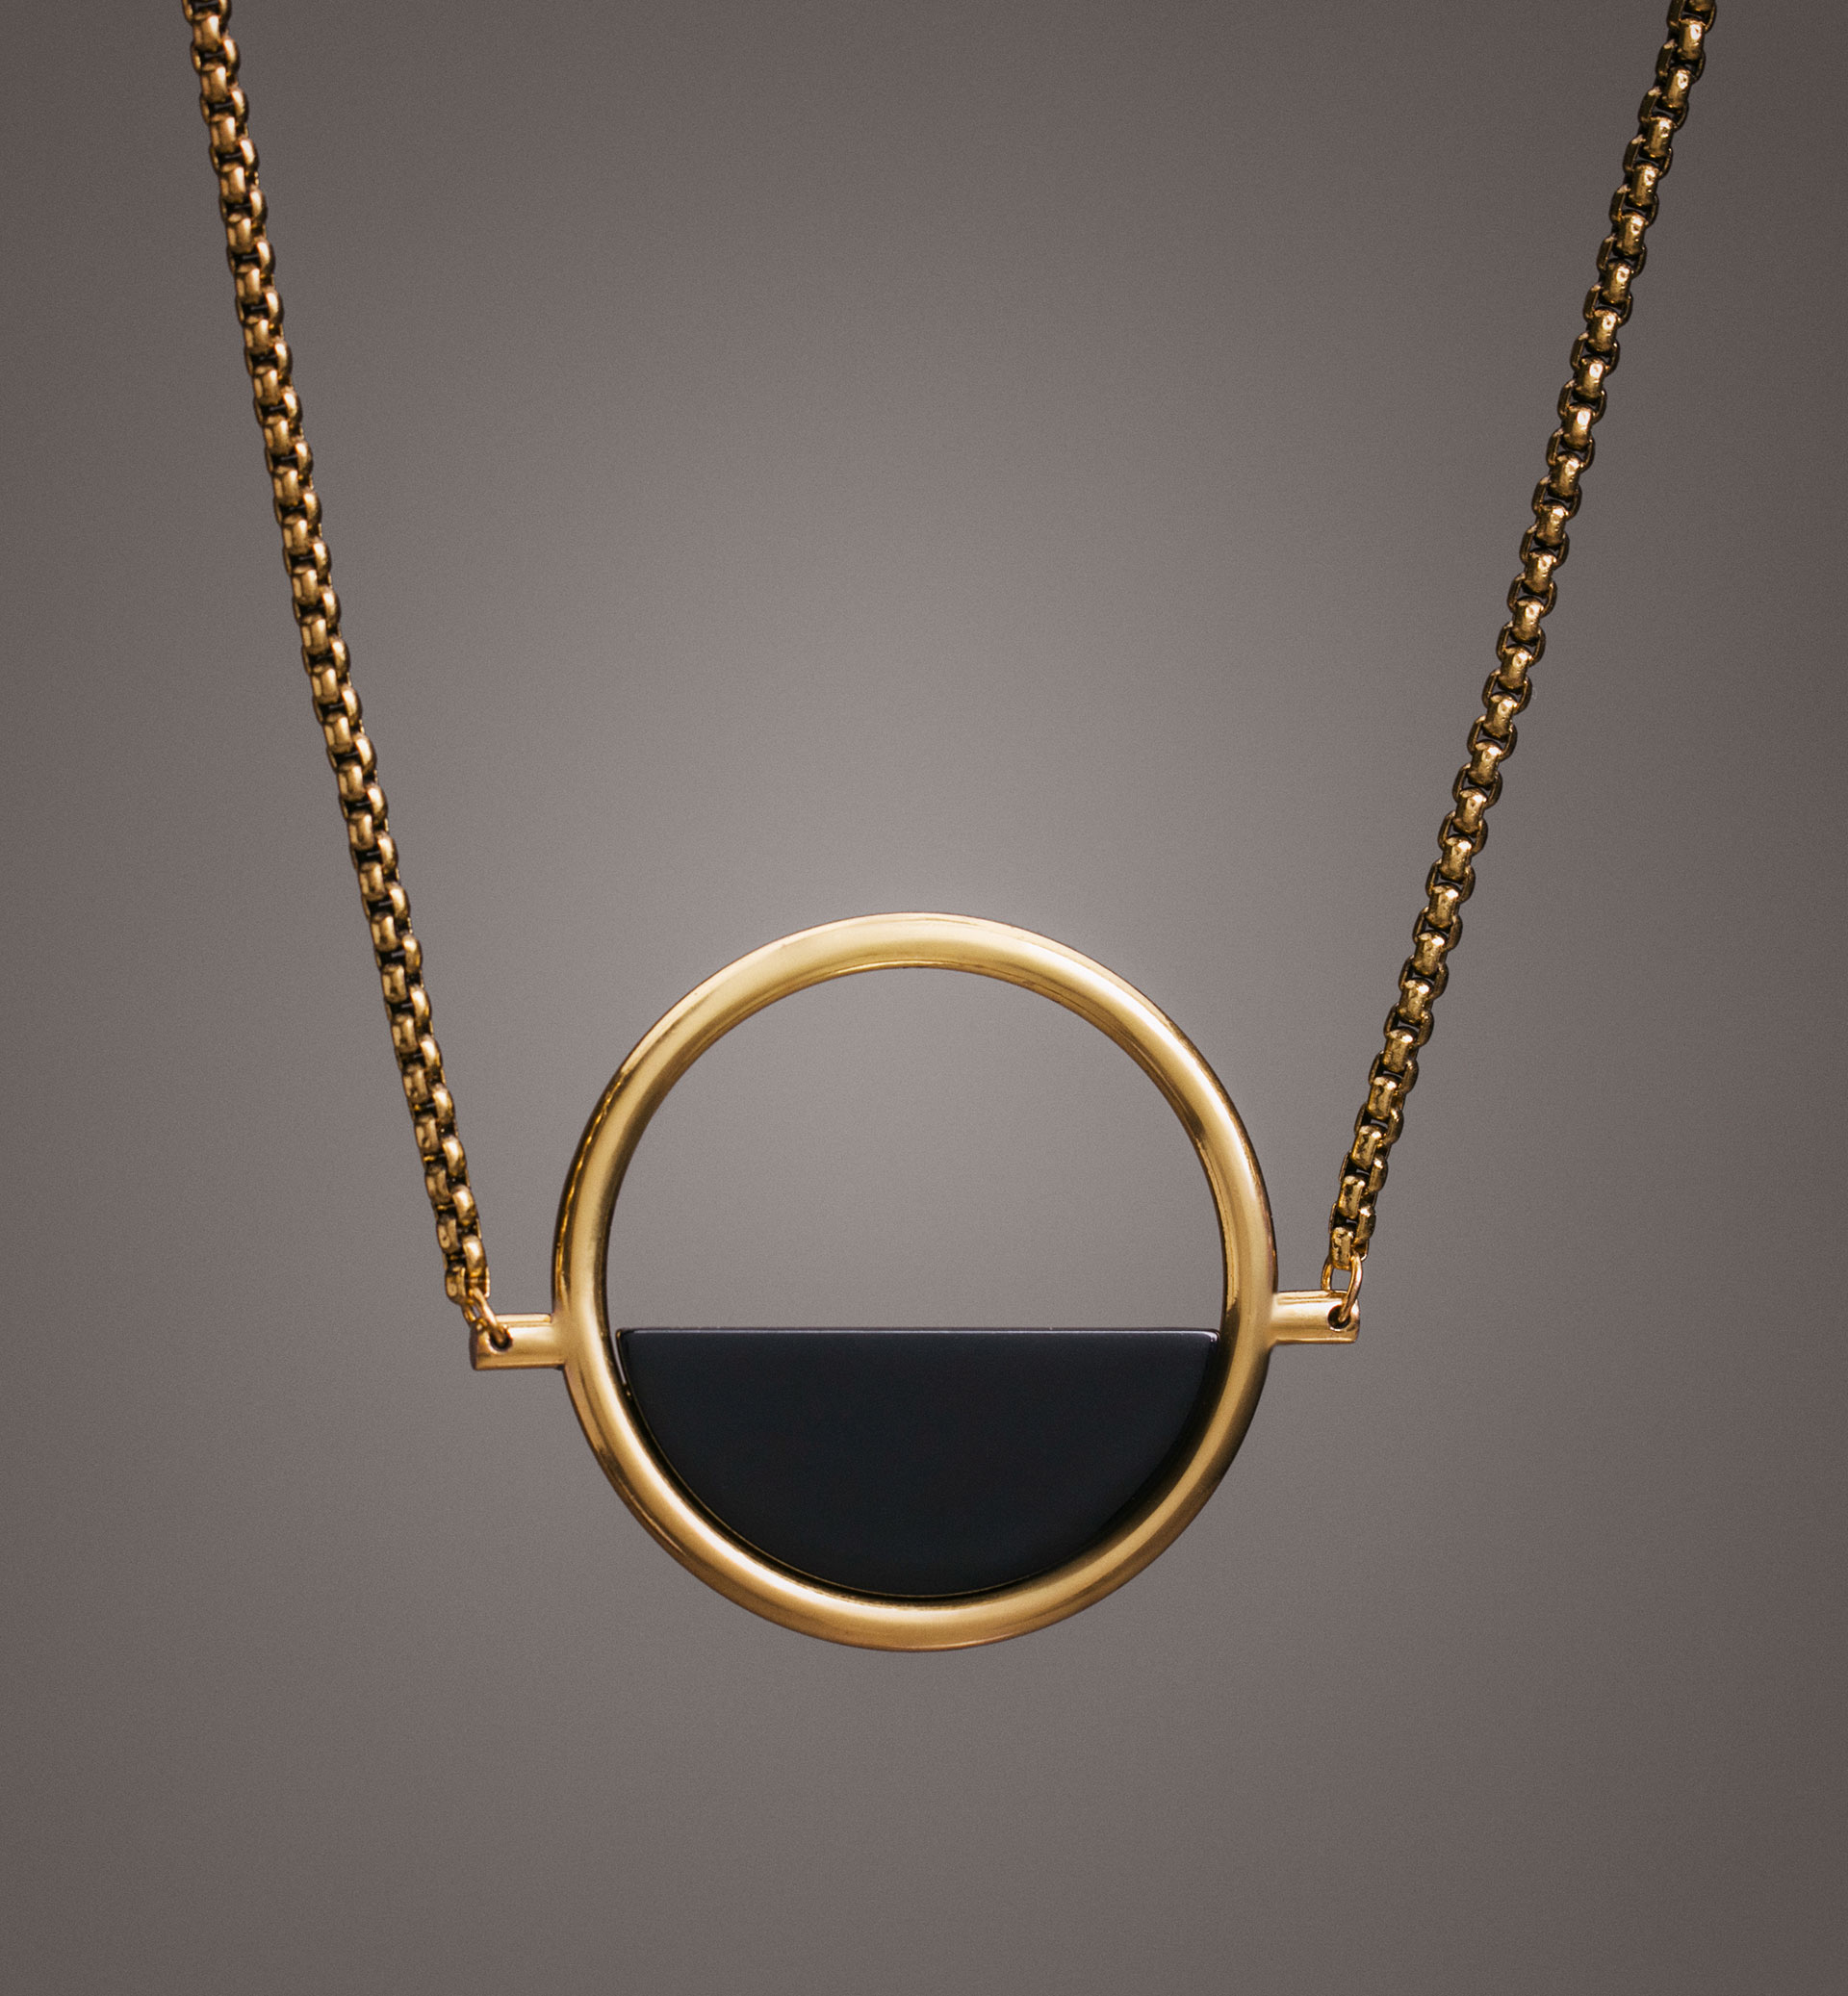 LIMITED EDITION CIRCULAR AND ENAMEL DETAIL NECKLACE